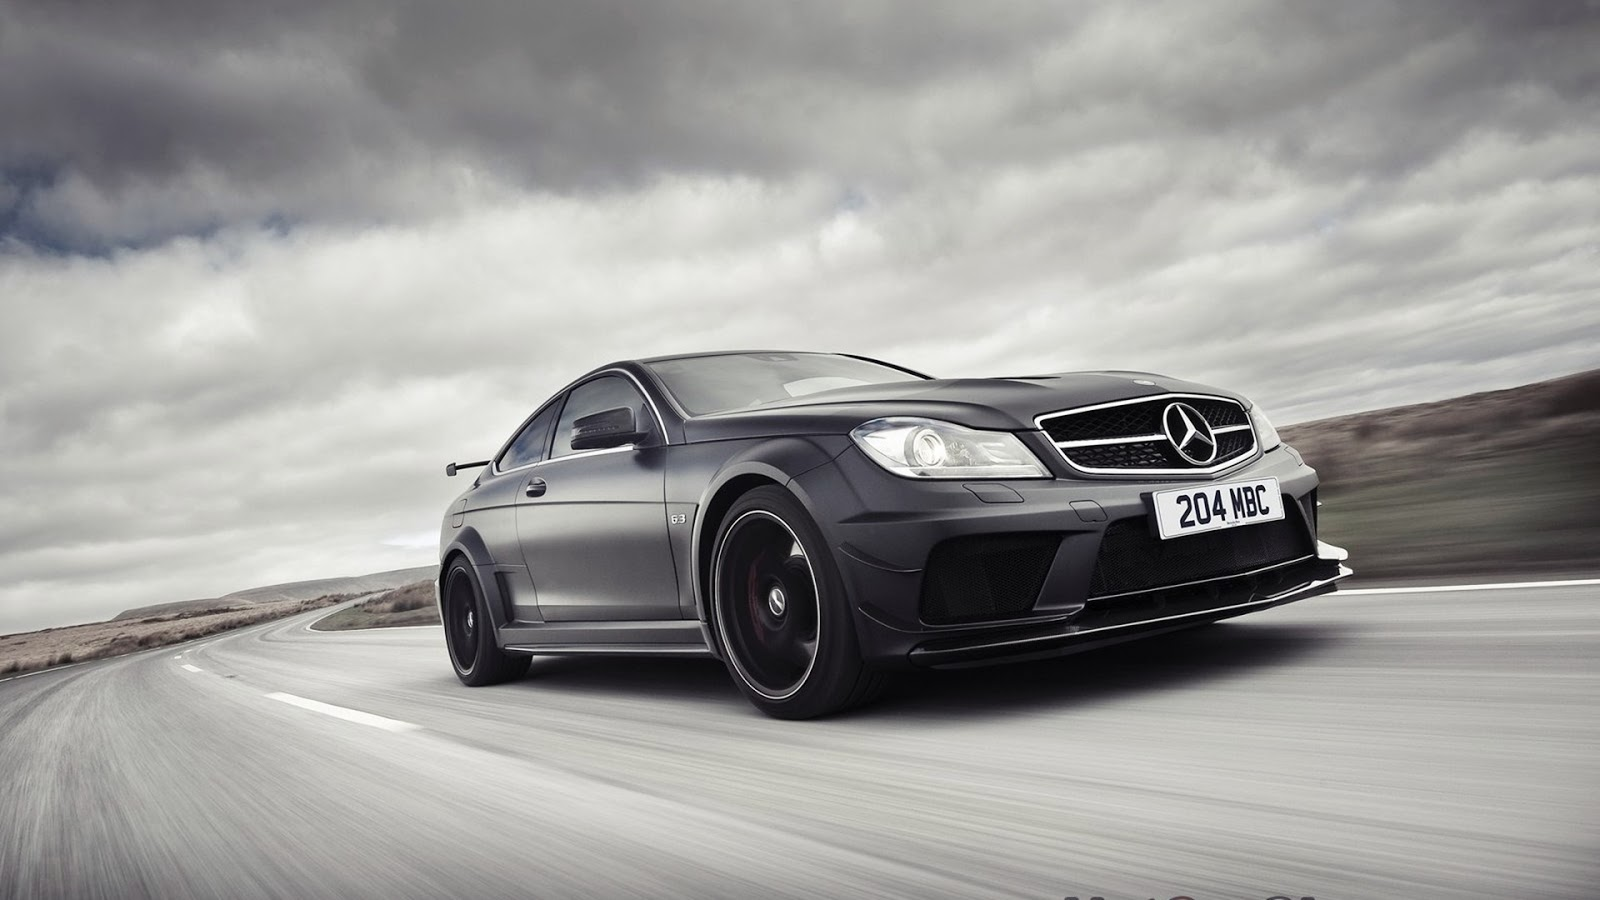 Mercedes Benz C63 HD Wallpapers Mercedes Benz C63 HD Wallpapers 1600x900